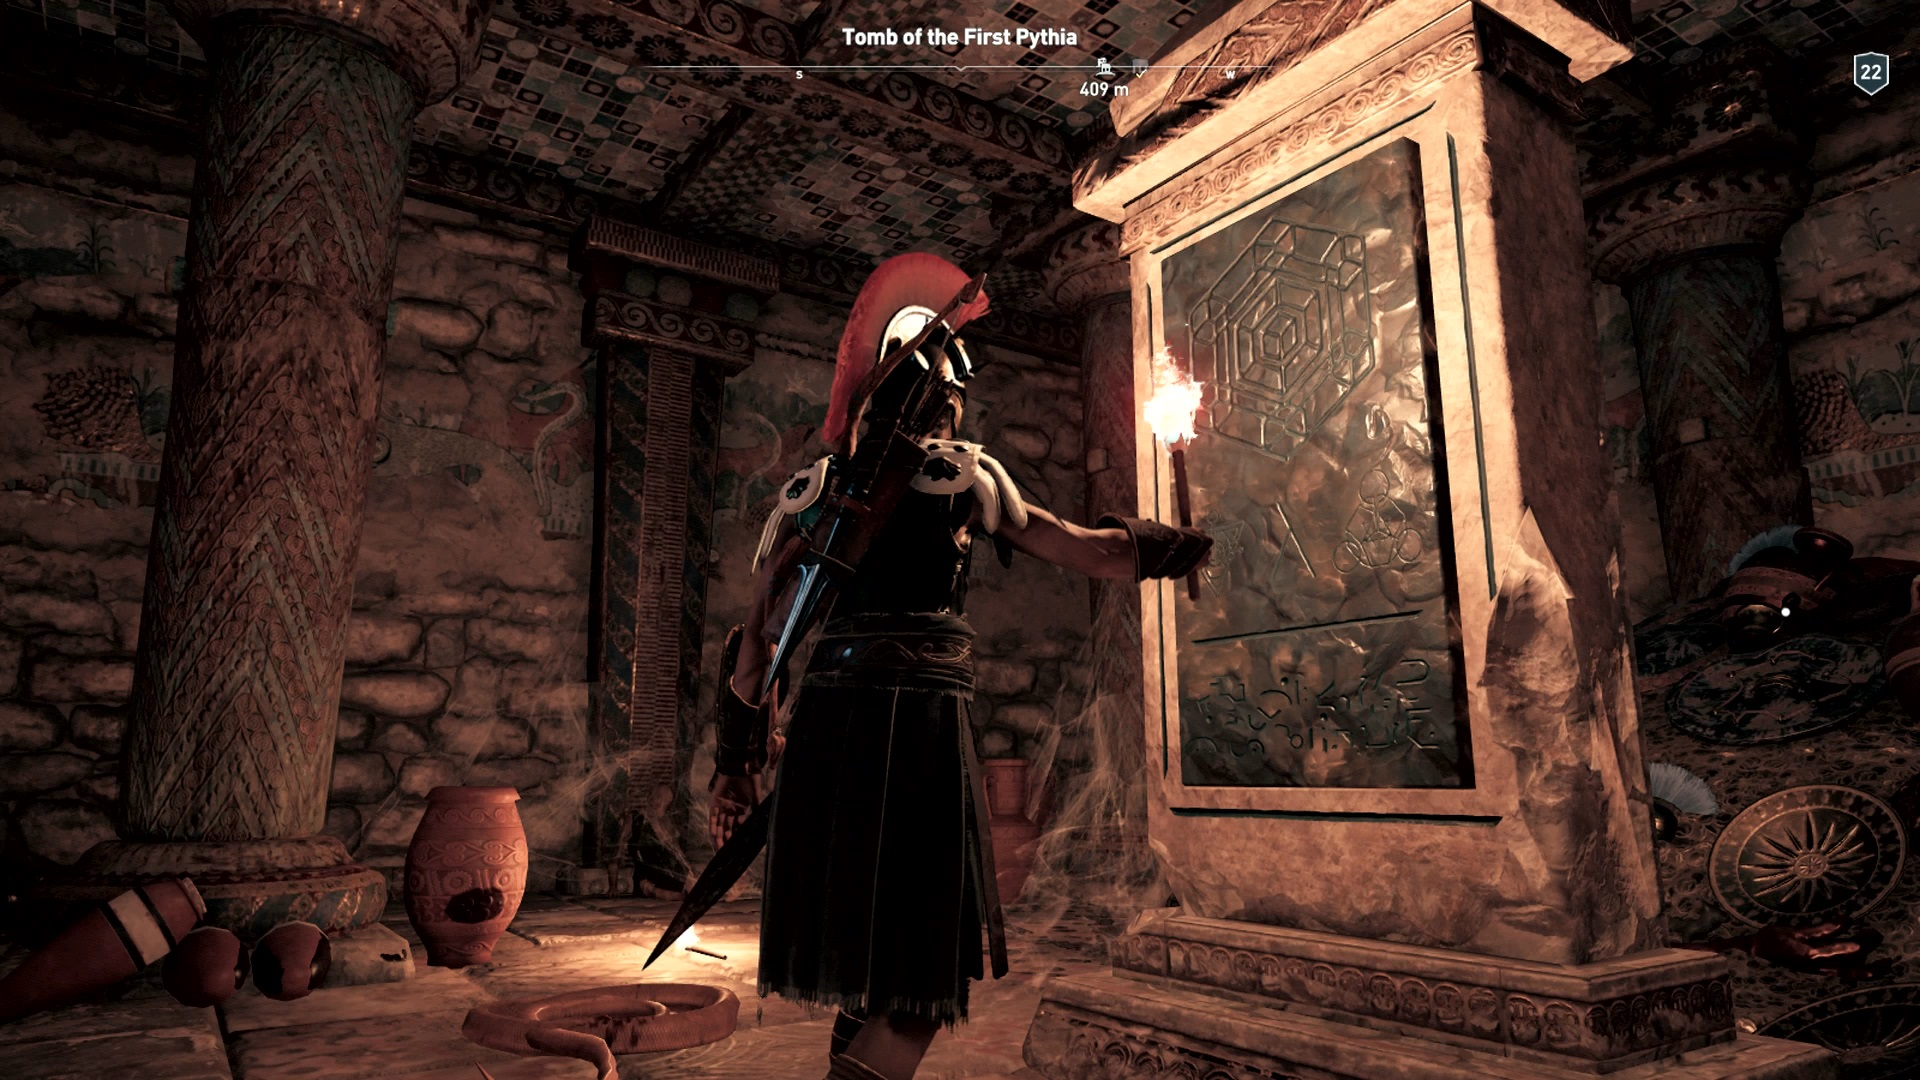 Kassandra finds an Ancient Stele monolith.